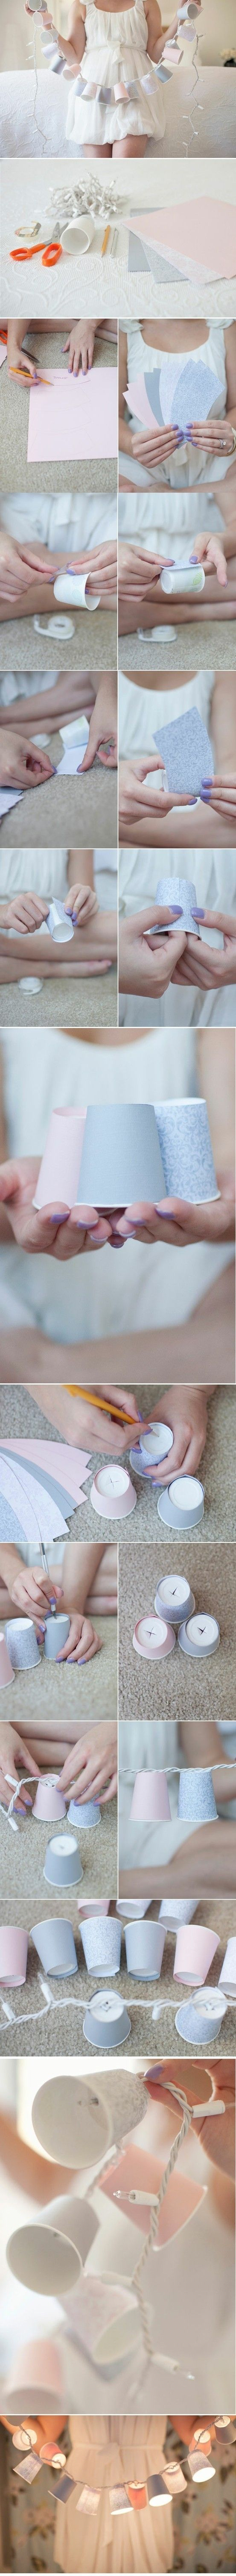 paper cup lights. great idea